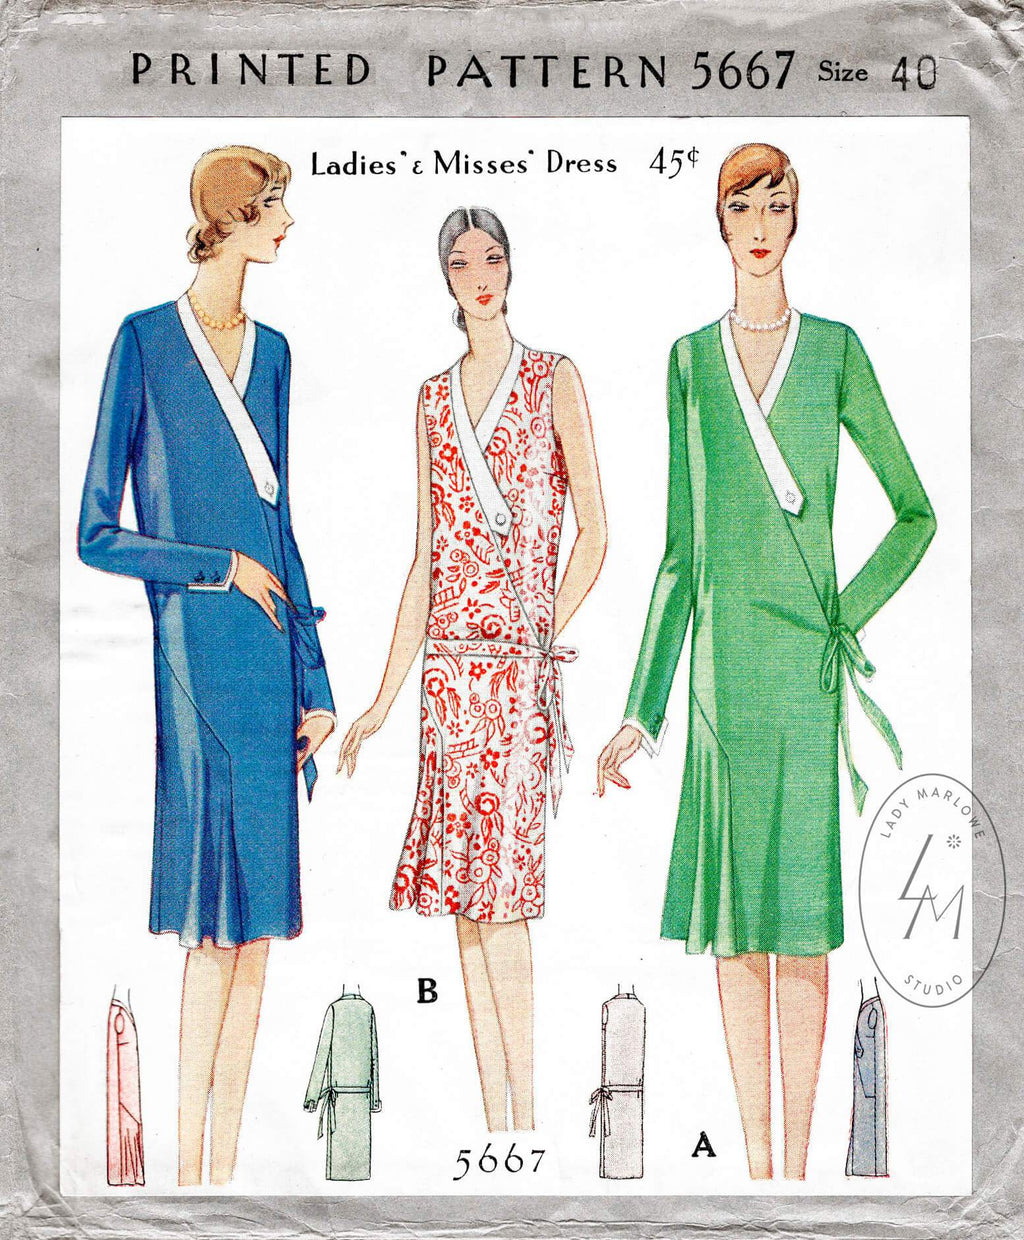 1920s 1928 McCall 5667 wrap dress decorative neck band flounce skirt vintage sewing pattern reproduction